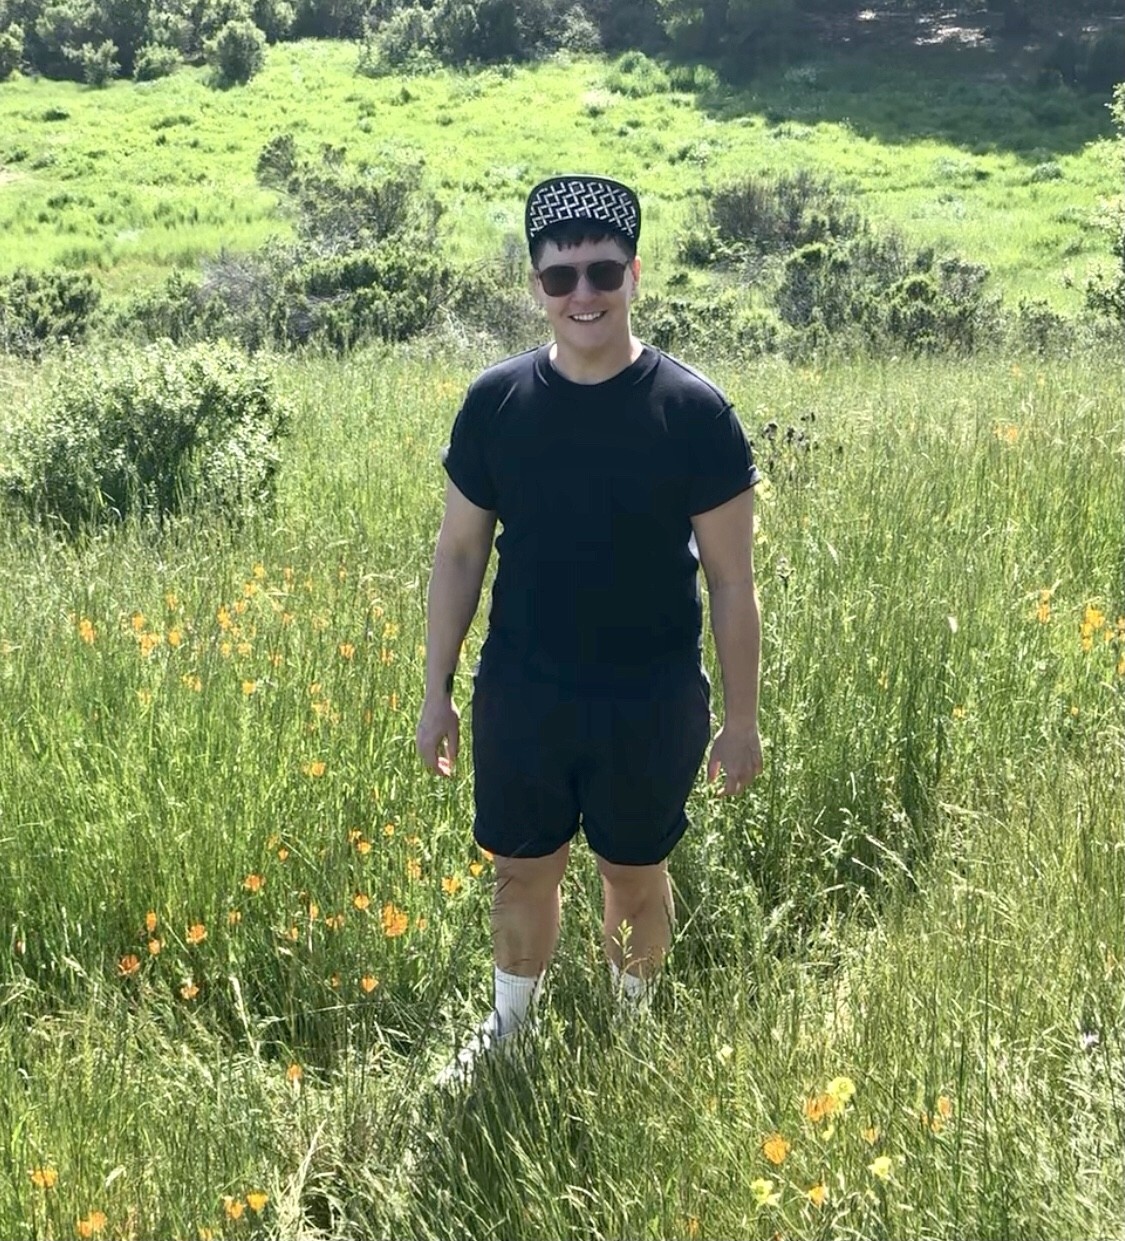 Maxe Crandall stands in a field of wildflowers, looking at the camera and smiling, wearing all black with a black and white cap.